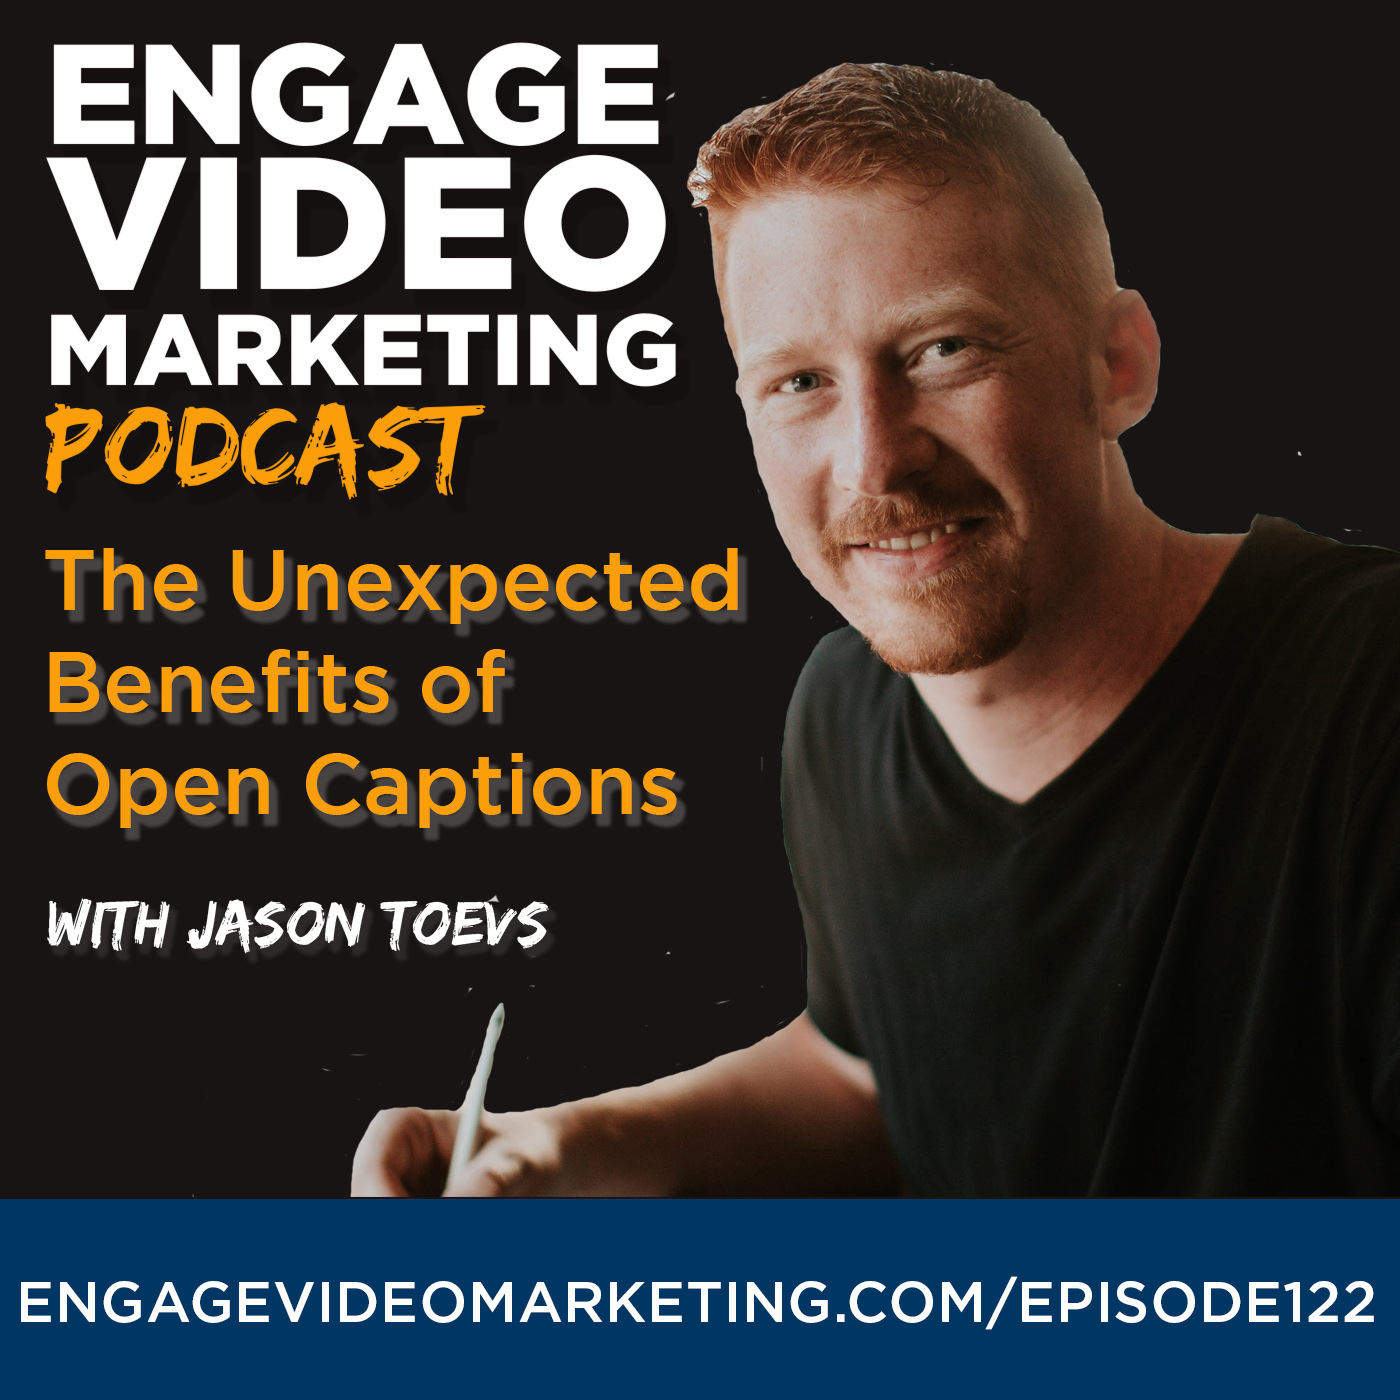 The Unexpected Benefits of Open Captions with Jason Toevs